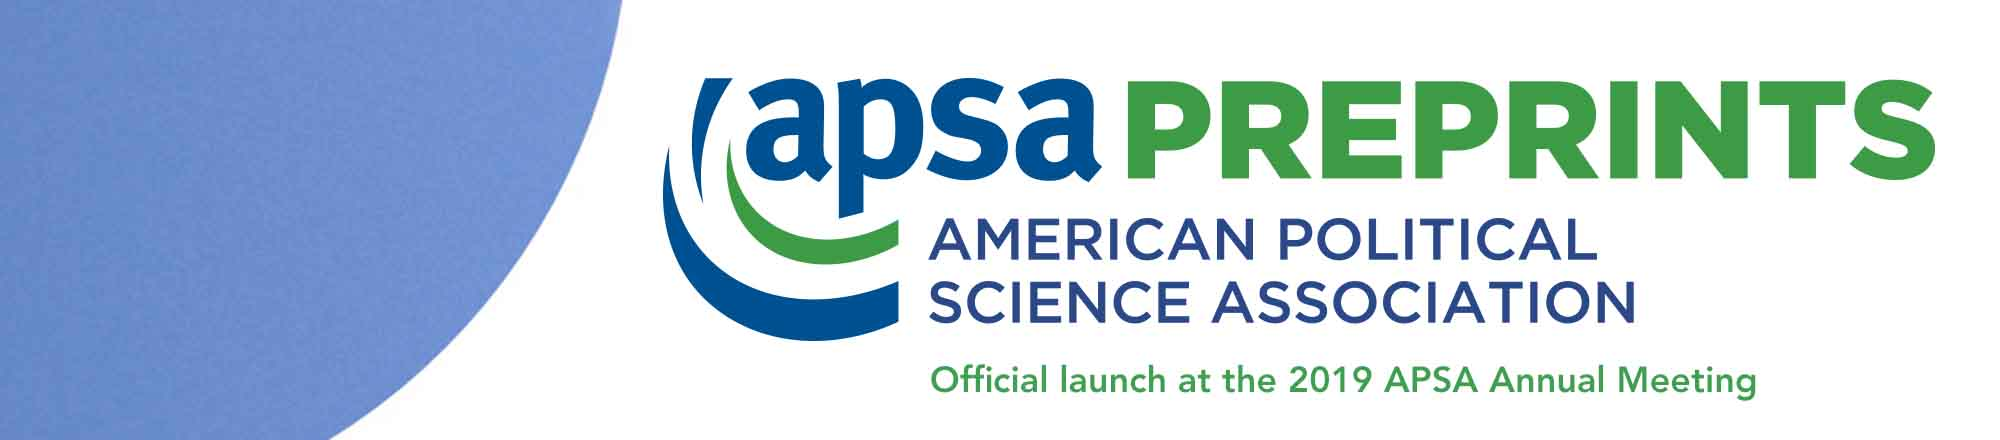 APSA Preprints launching